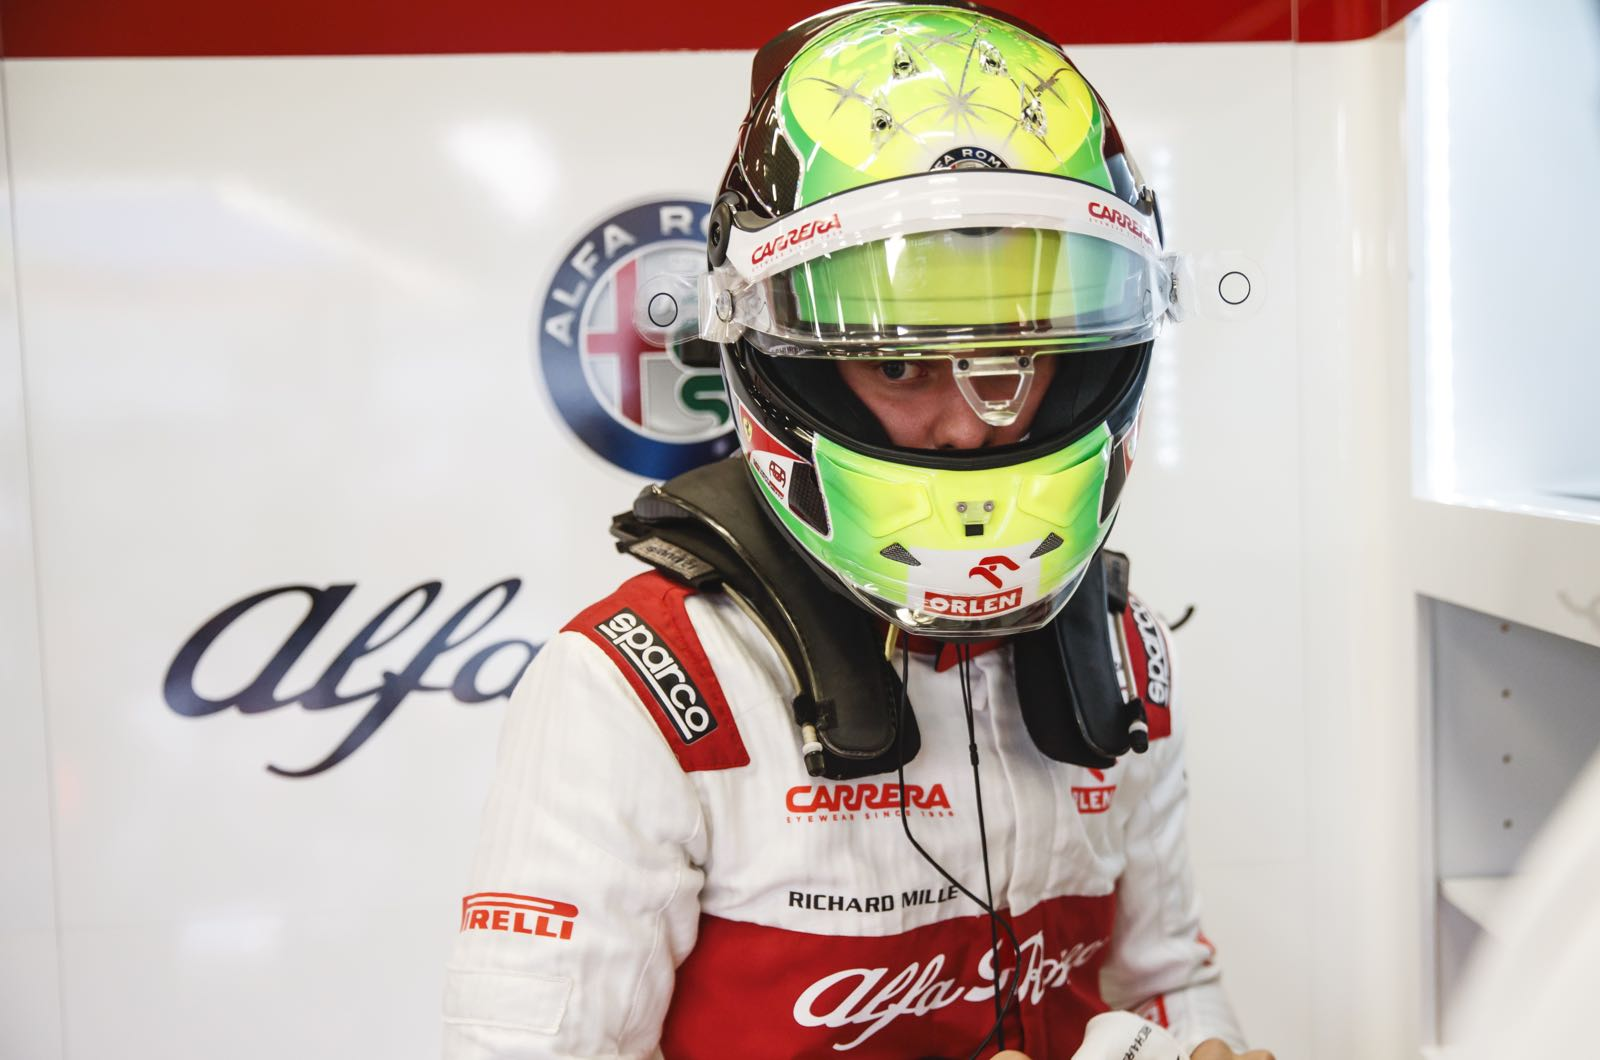 Massa Hopes Schumacher Can See His Son In F1